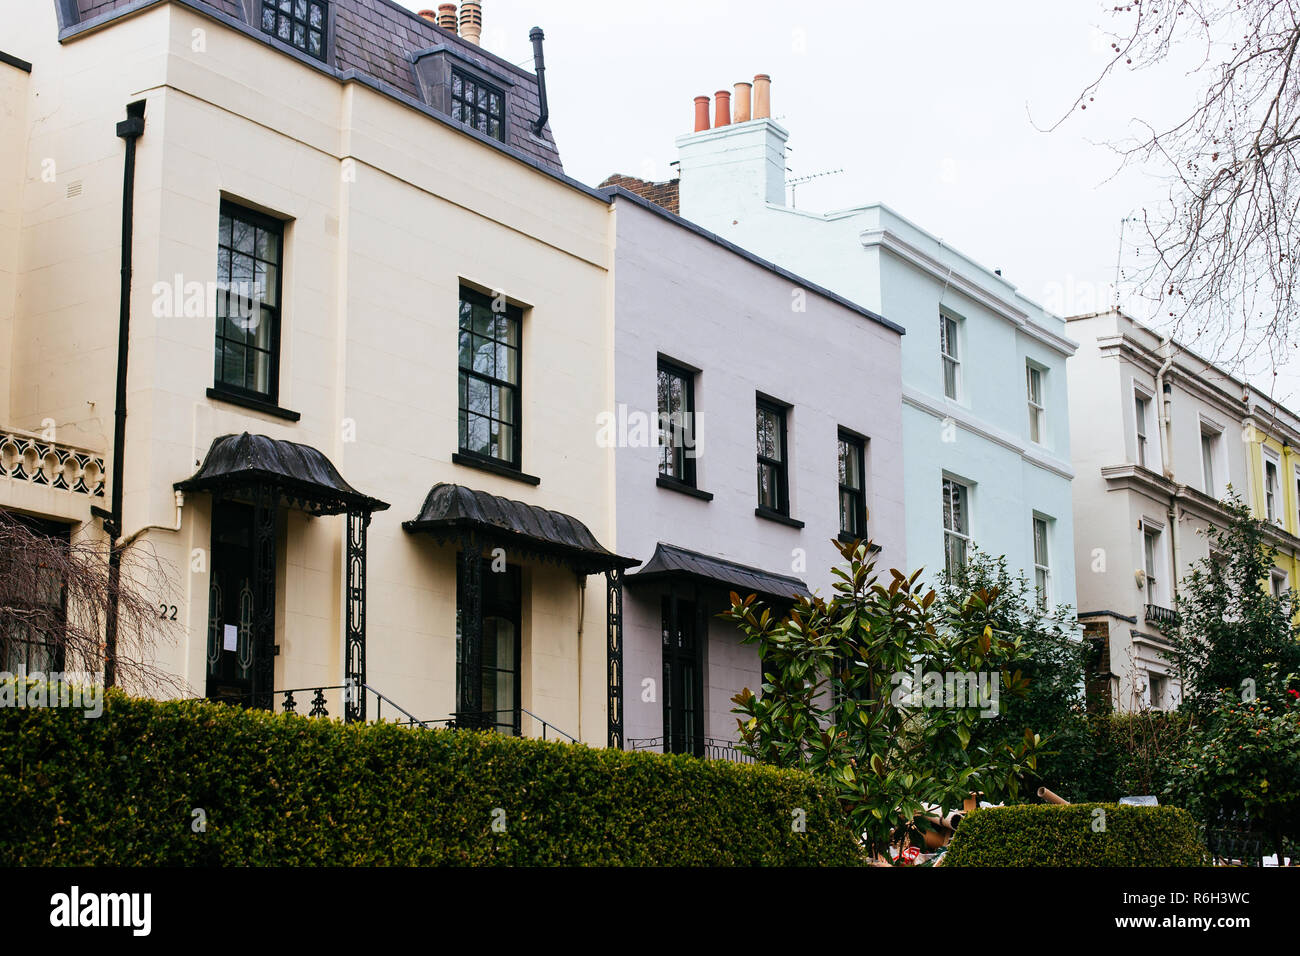 London, UK - March 11, 2018: townhouses on Holland Park Avenue in Royal Borough of Kensington and Chelsea, west central London, UK Stock Photo